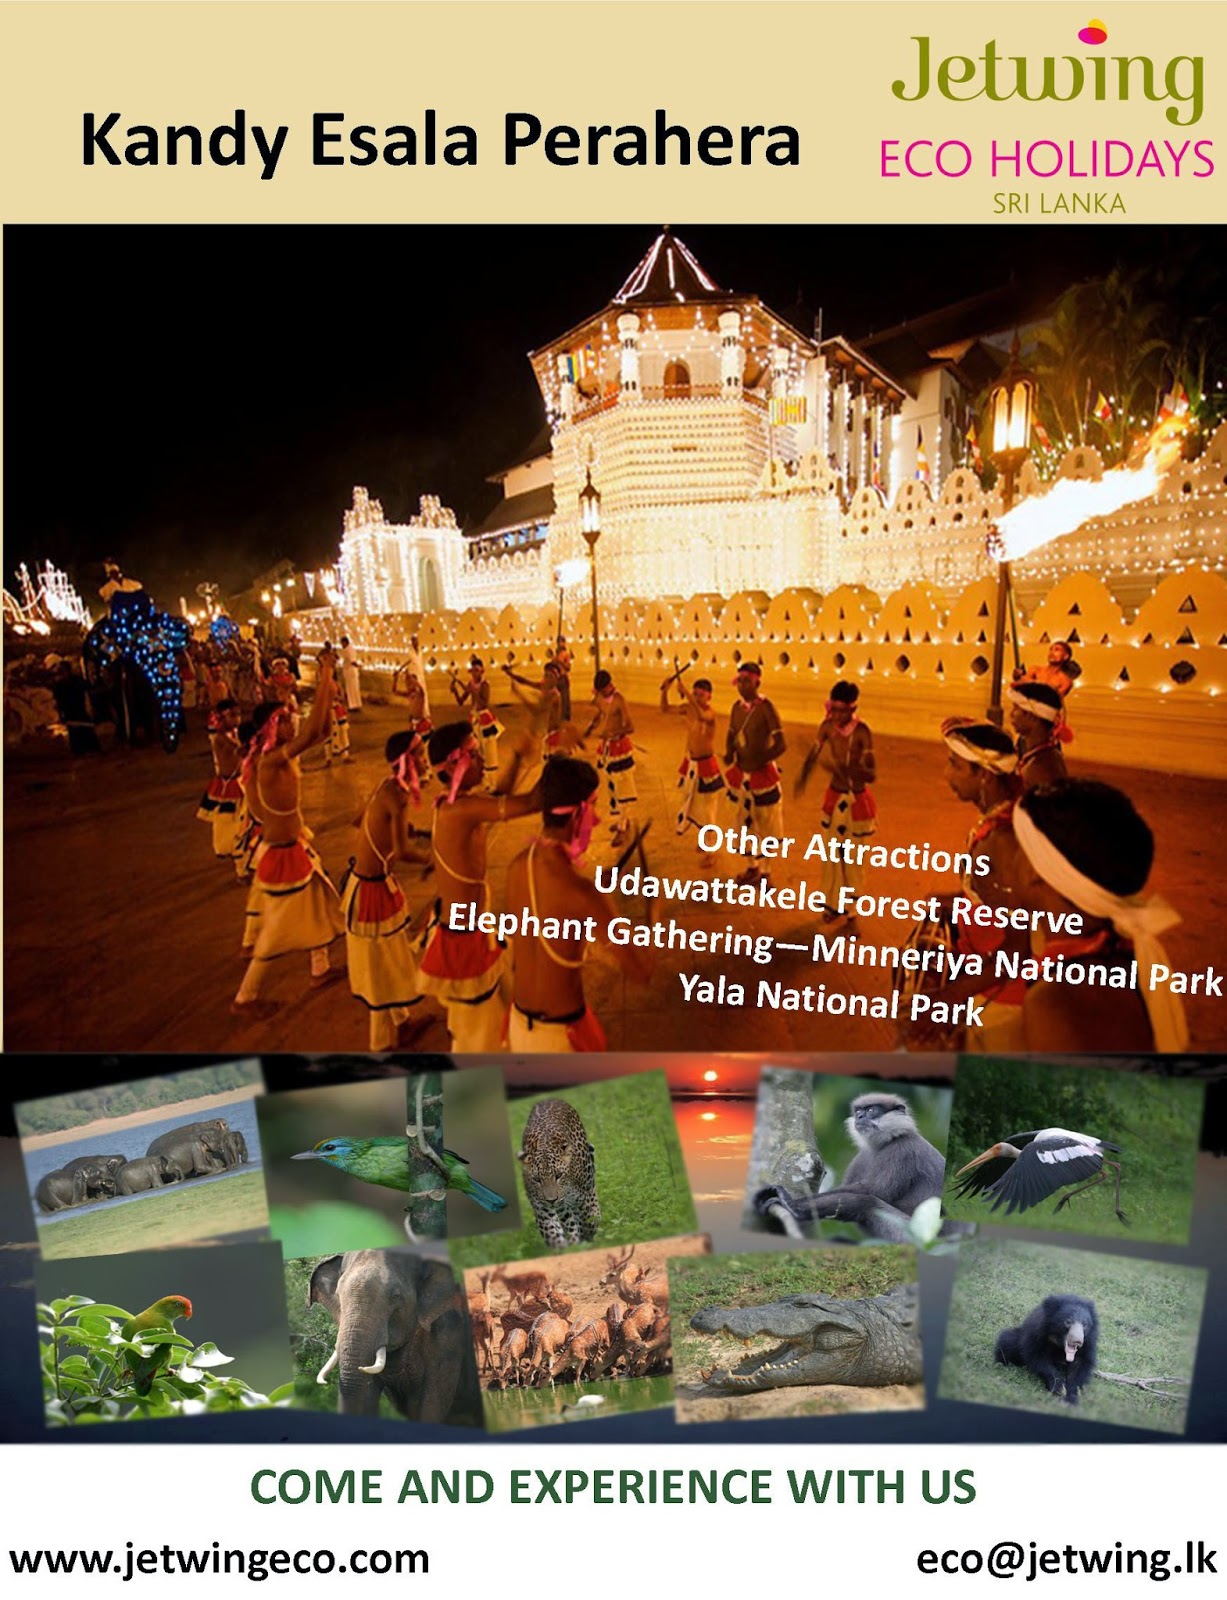 http://www.jetwingeco.com/highlights-of-month/kandy-esala-perahera-packages